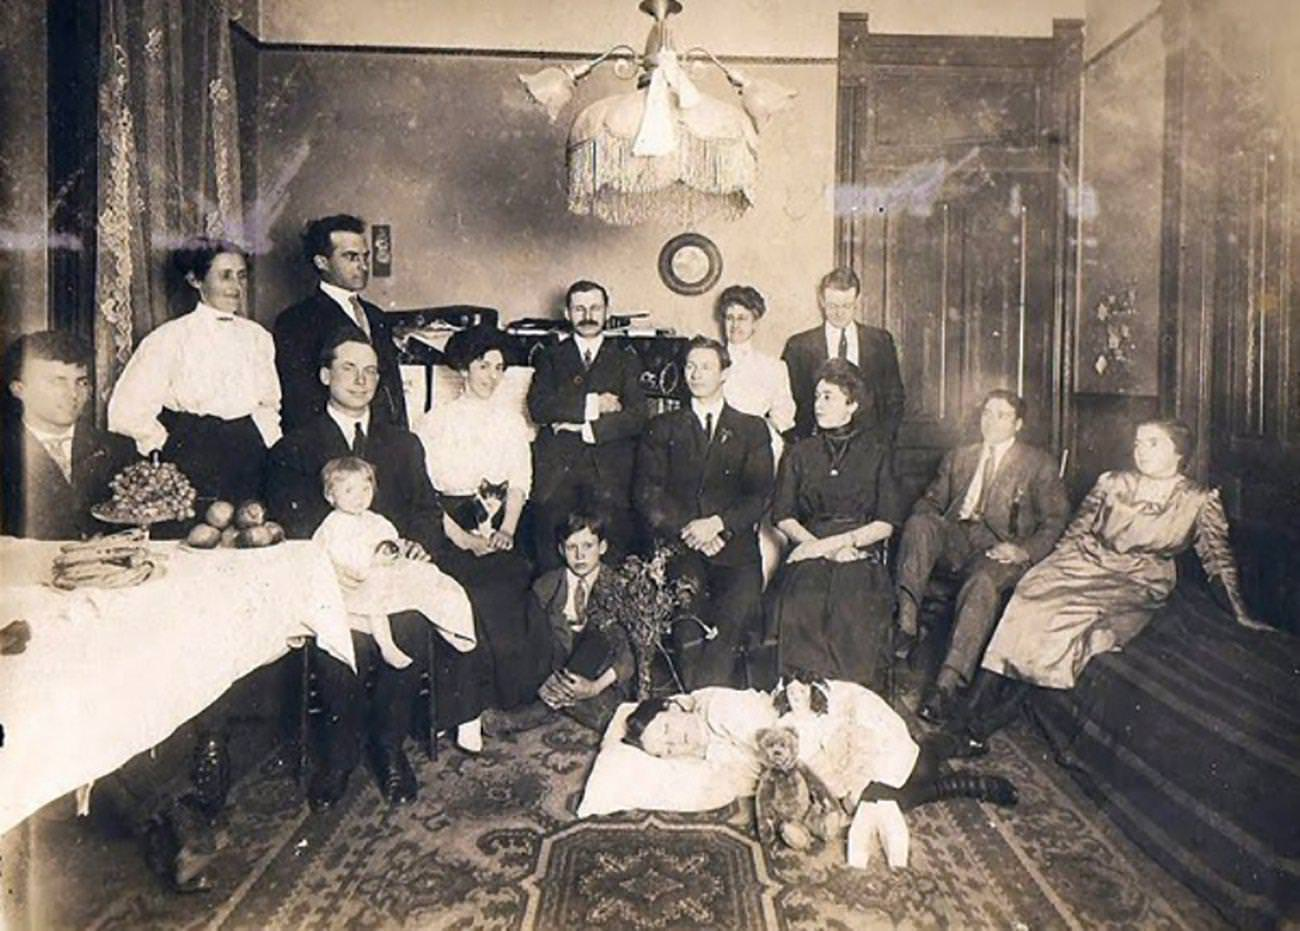 Dead girl is  is lying on the floor of the parlor surrounded by family members.